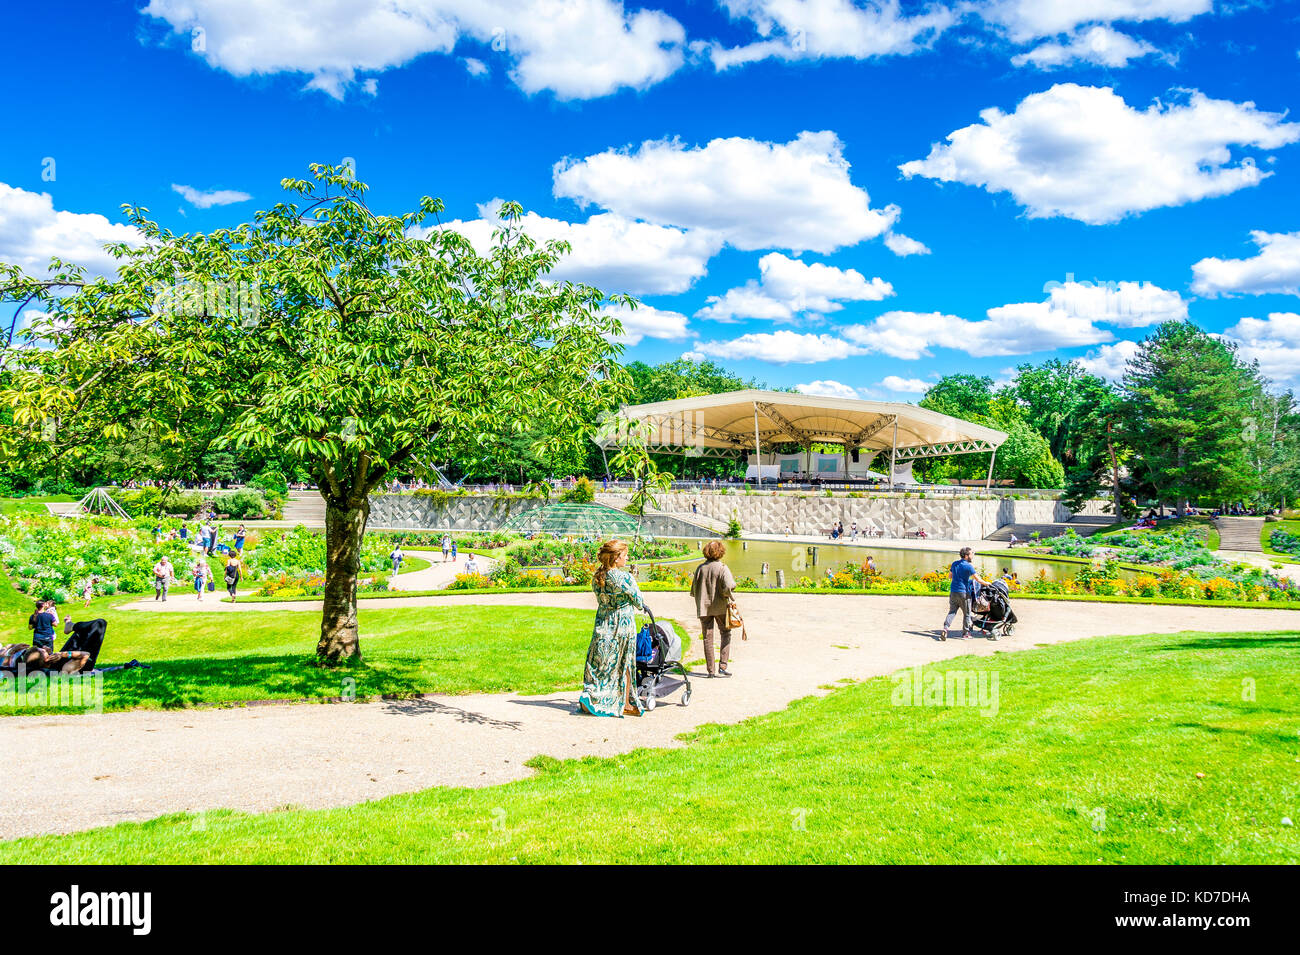 Parc floral de Paris is a public park and botanical garden located within the Bois de Vincennes in the 12th arrondissement Stock Photo